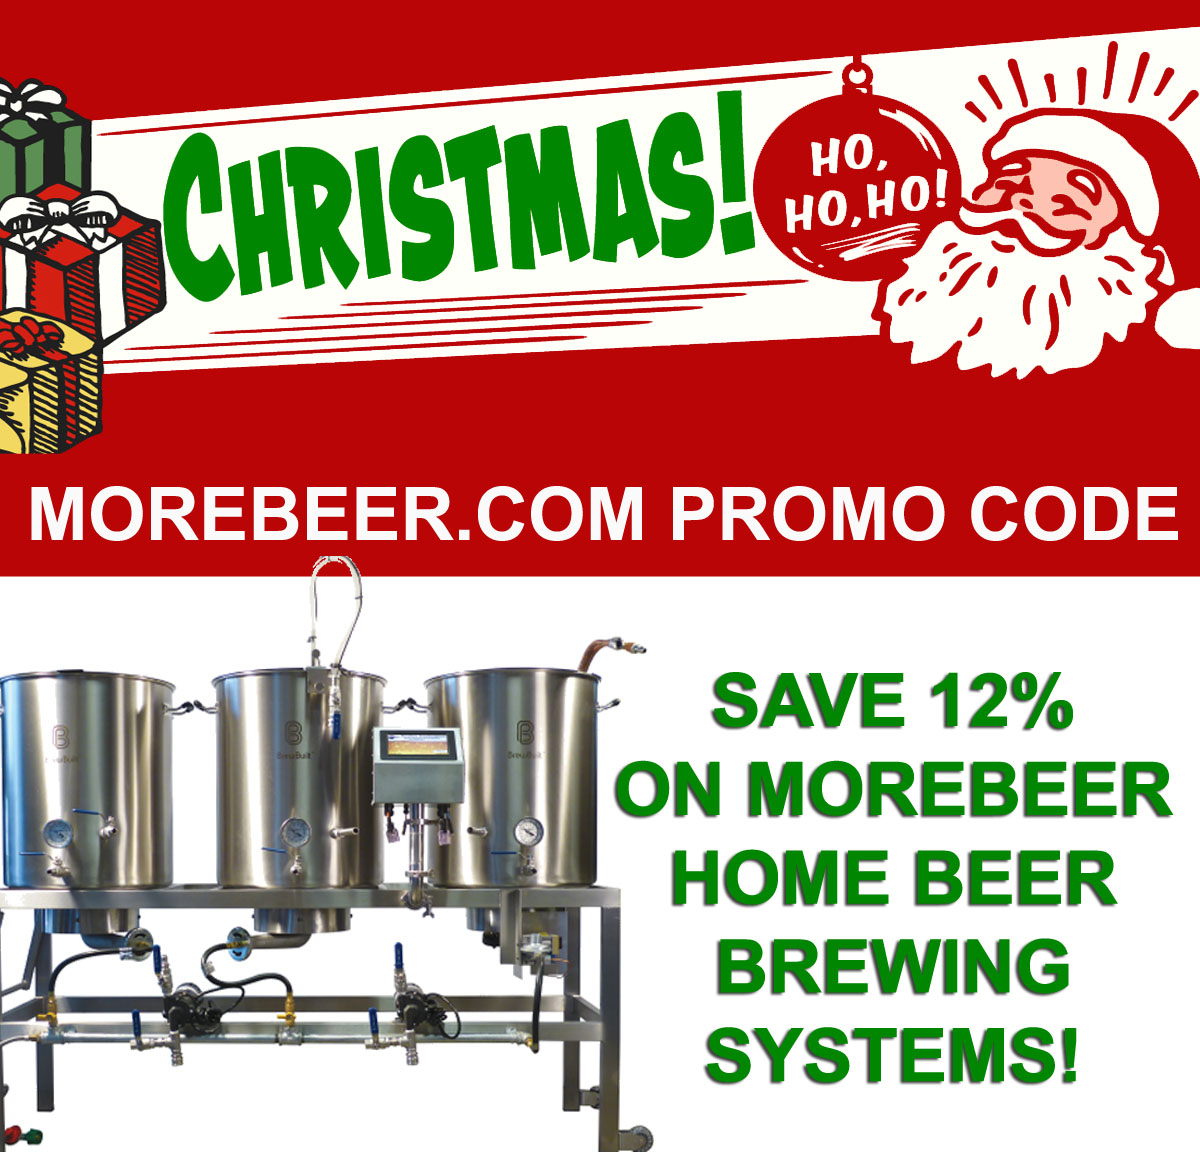 Home Brewer Promo Code for Save 12% On More Beer Homebrewing Systems! Coupon Code